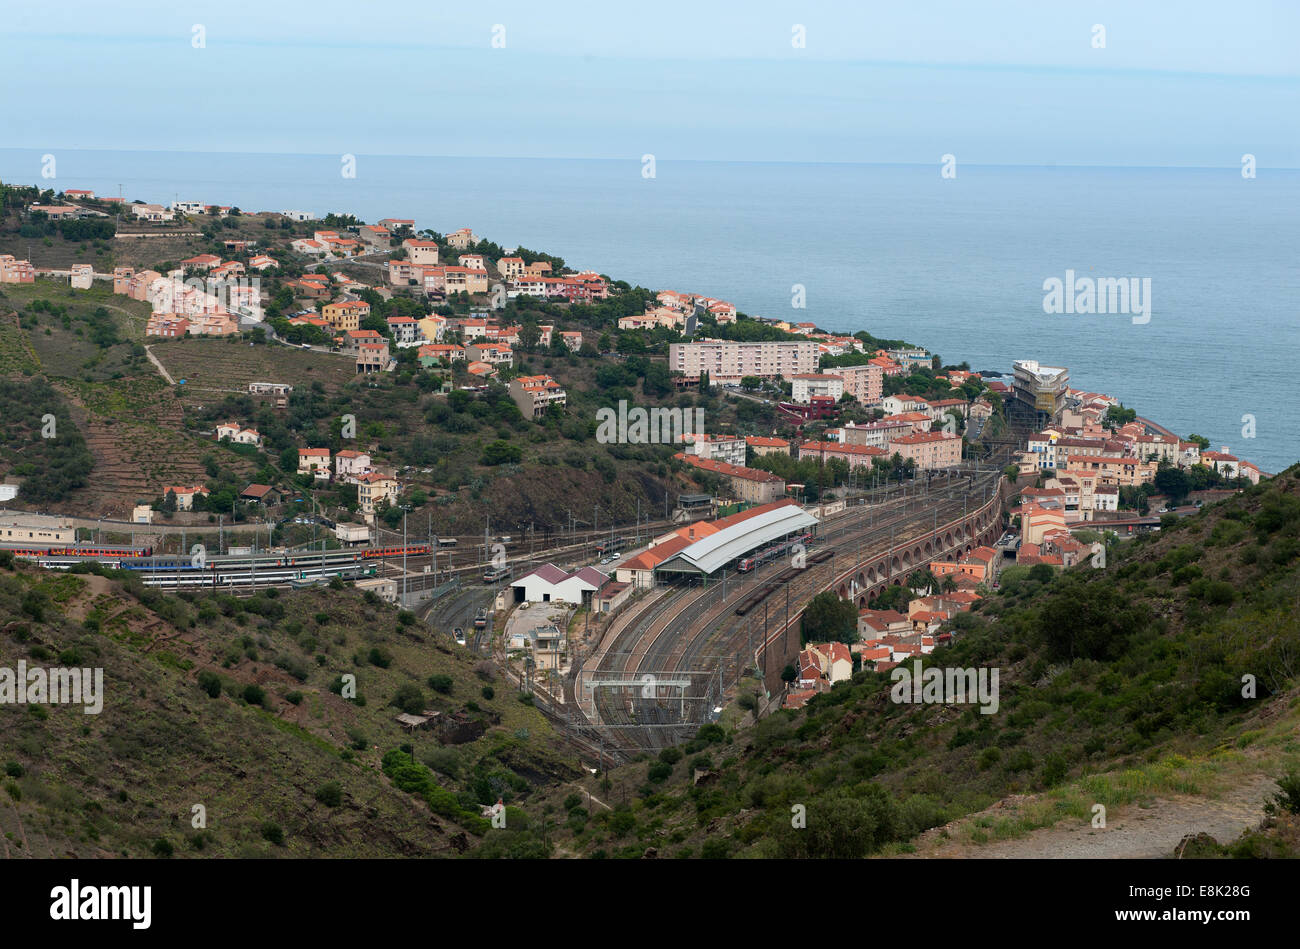 France. Cebere, the french railhead town on the Mediterranean coast before entering Spain at Portbou.. Sept 2014 - Stock Image